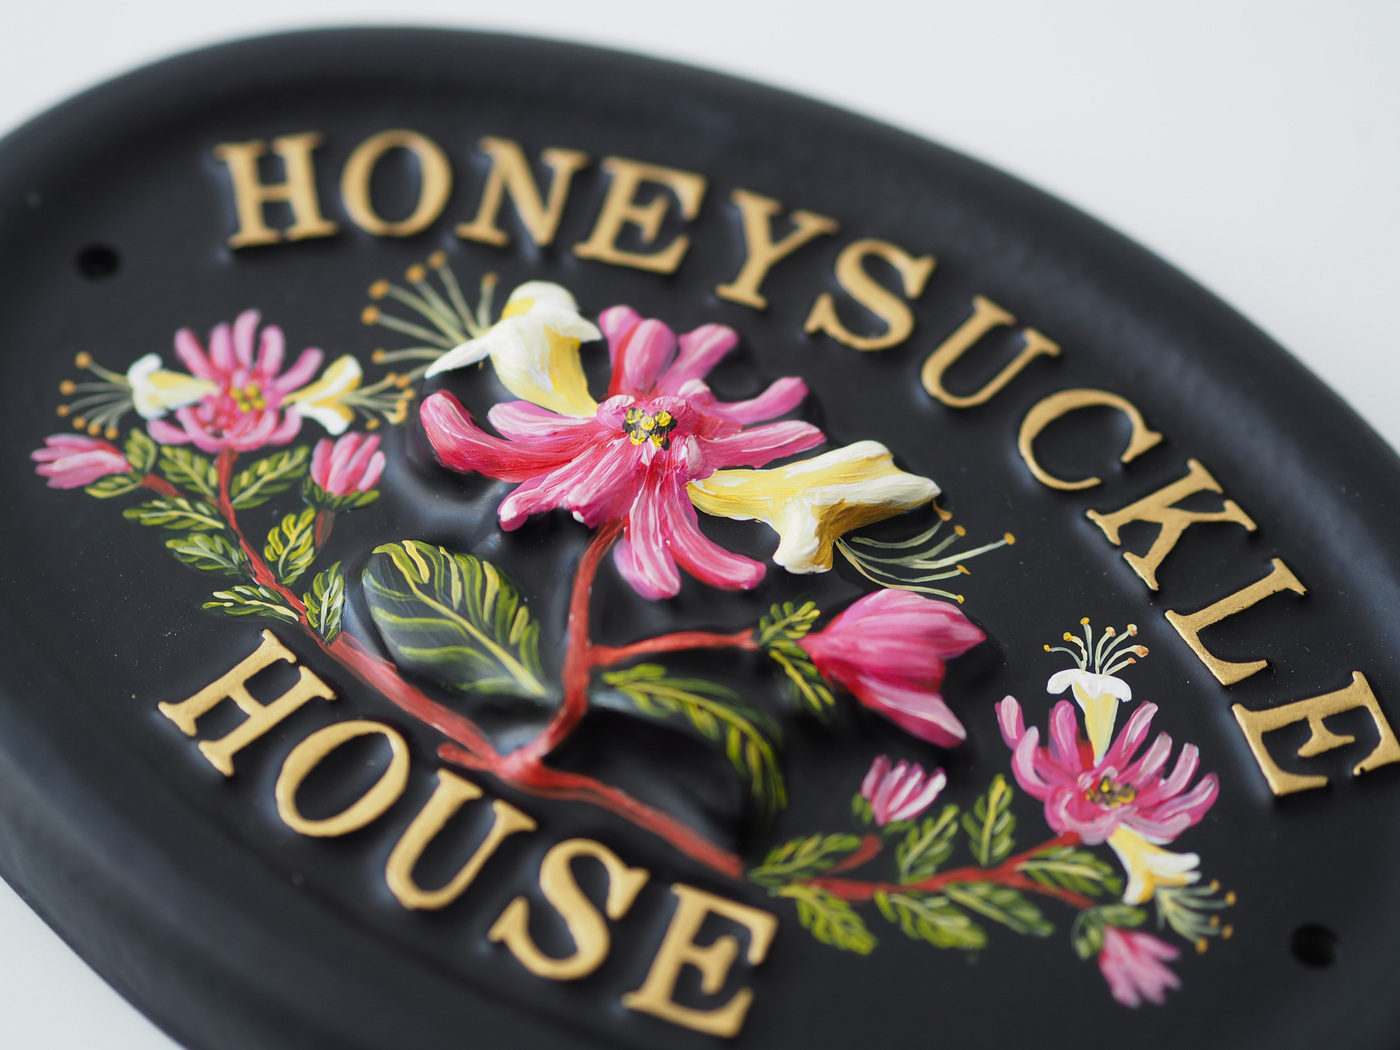 Honeysuckle close-up. house sign